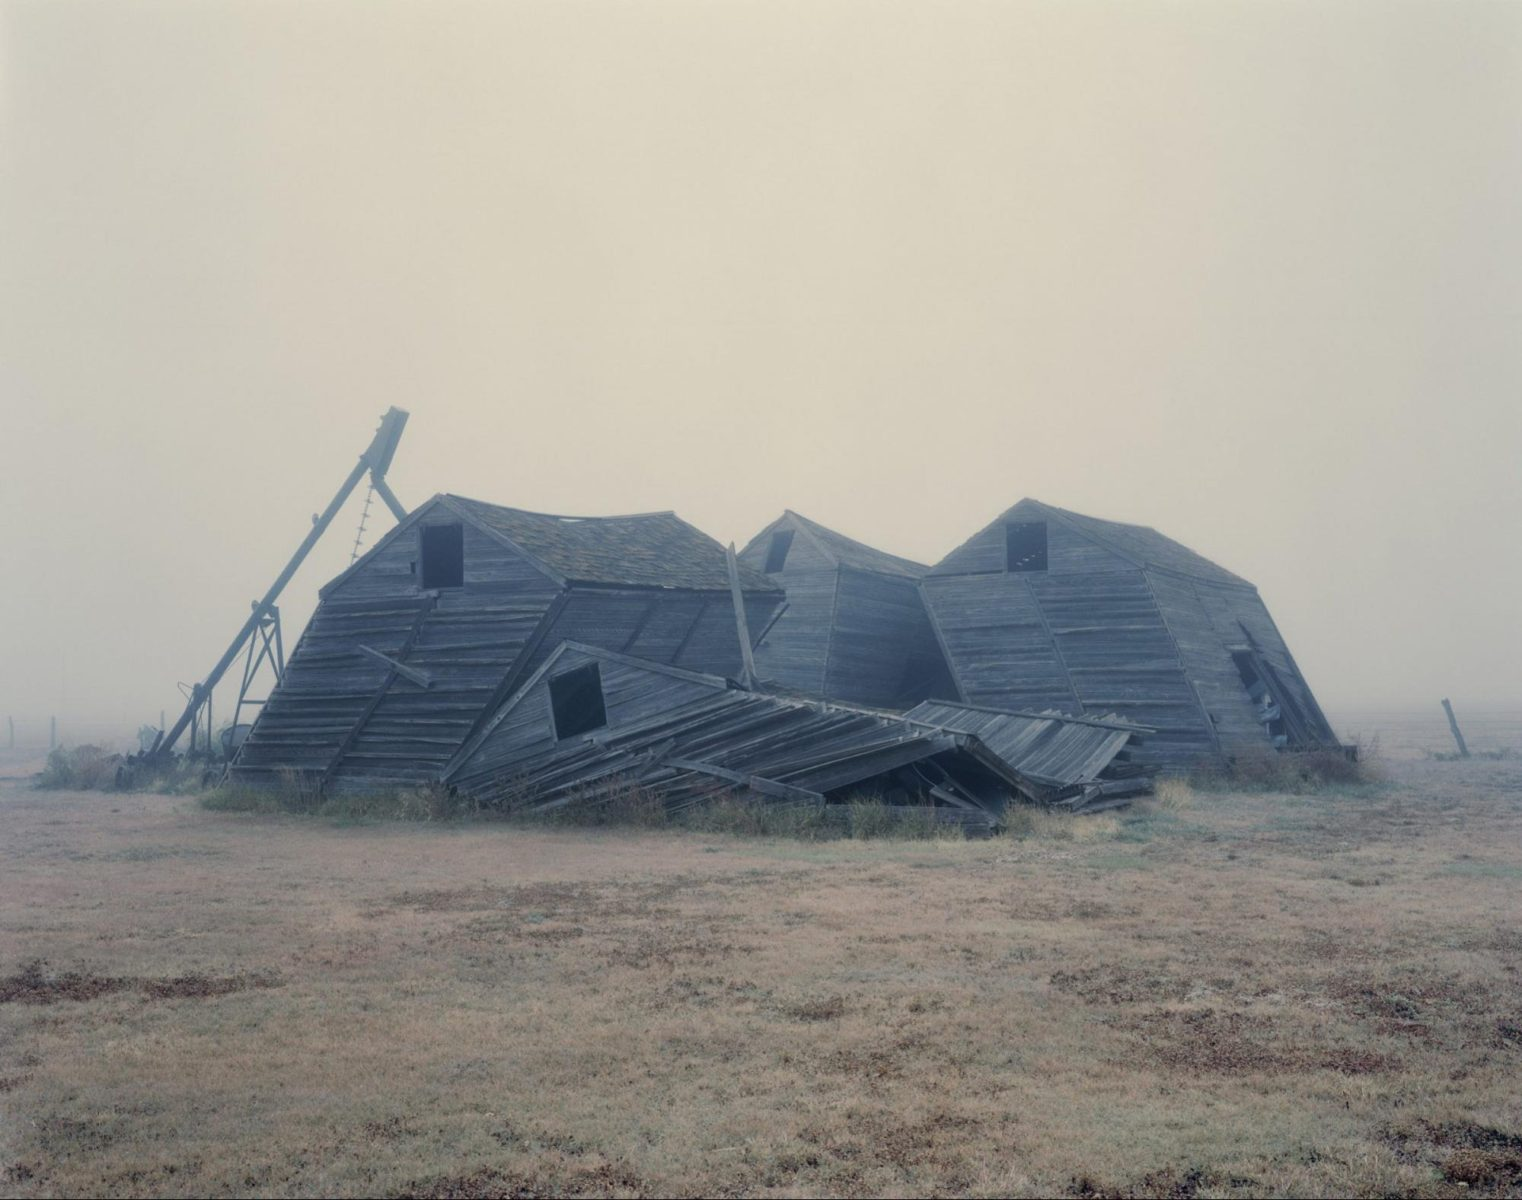 Crumpled Barns, Texas, 1995 photograph by Nadav Kander